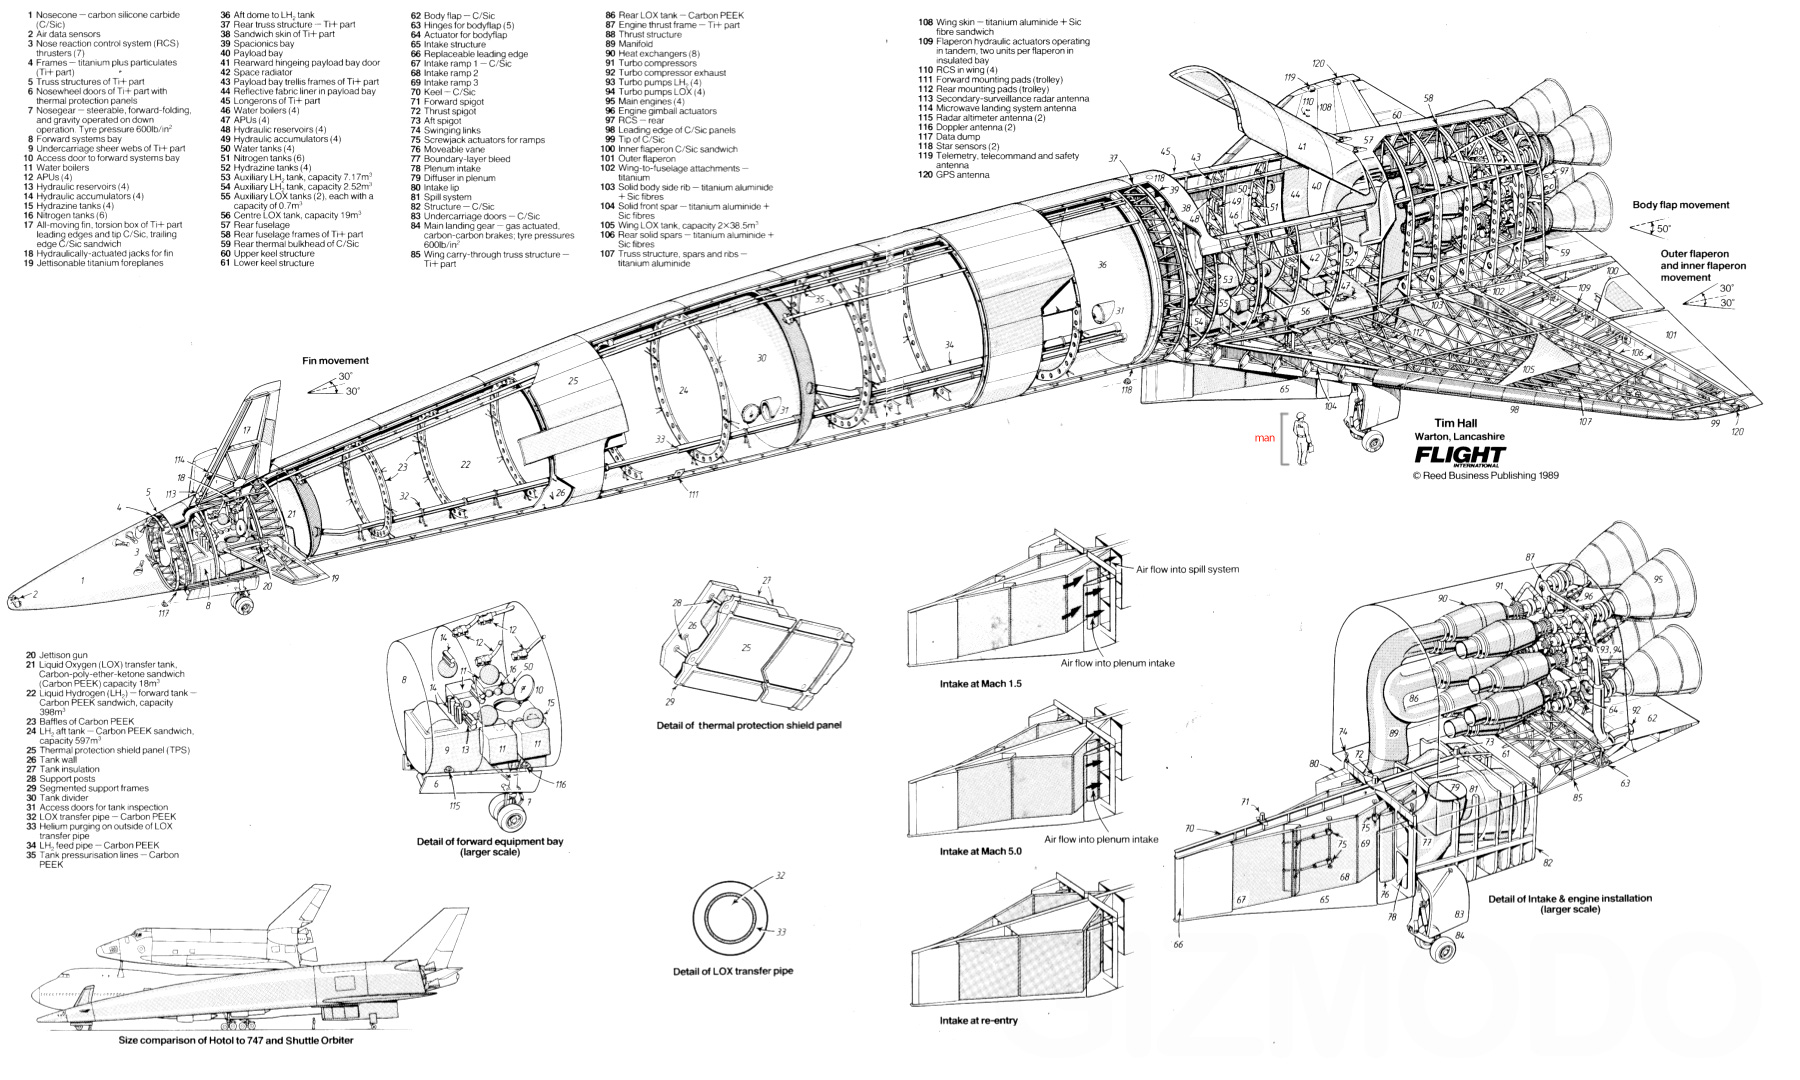 Hotol The Reusable Spaceship Coming Back From The 80s